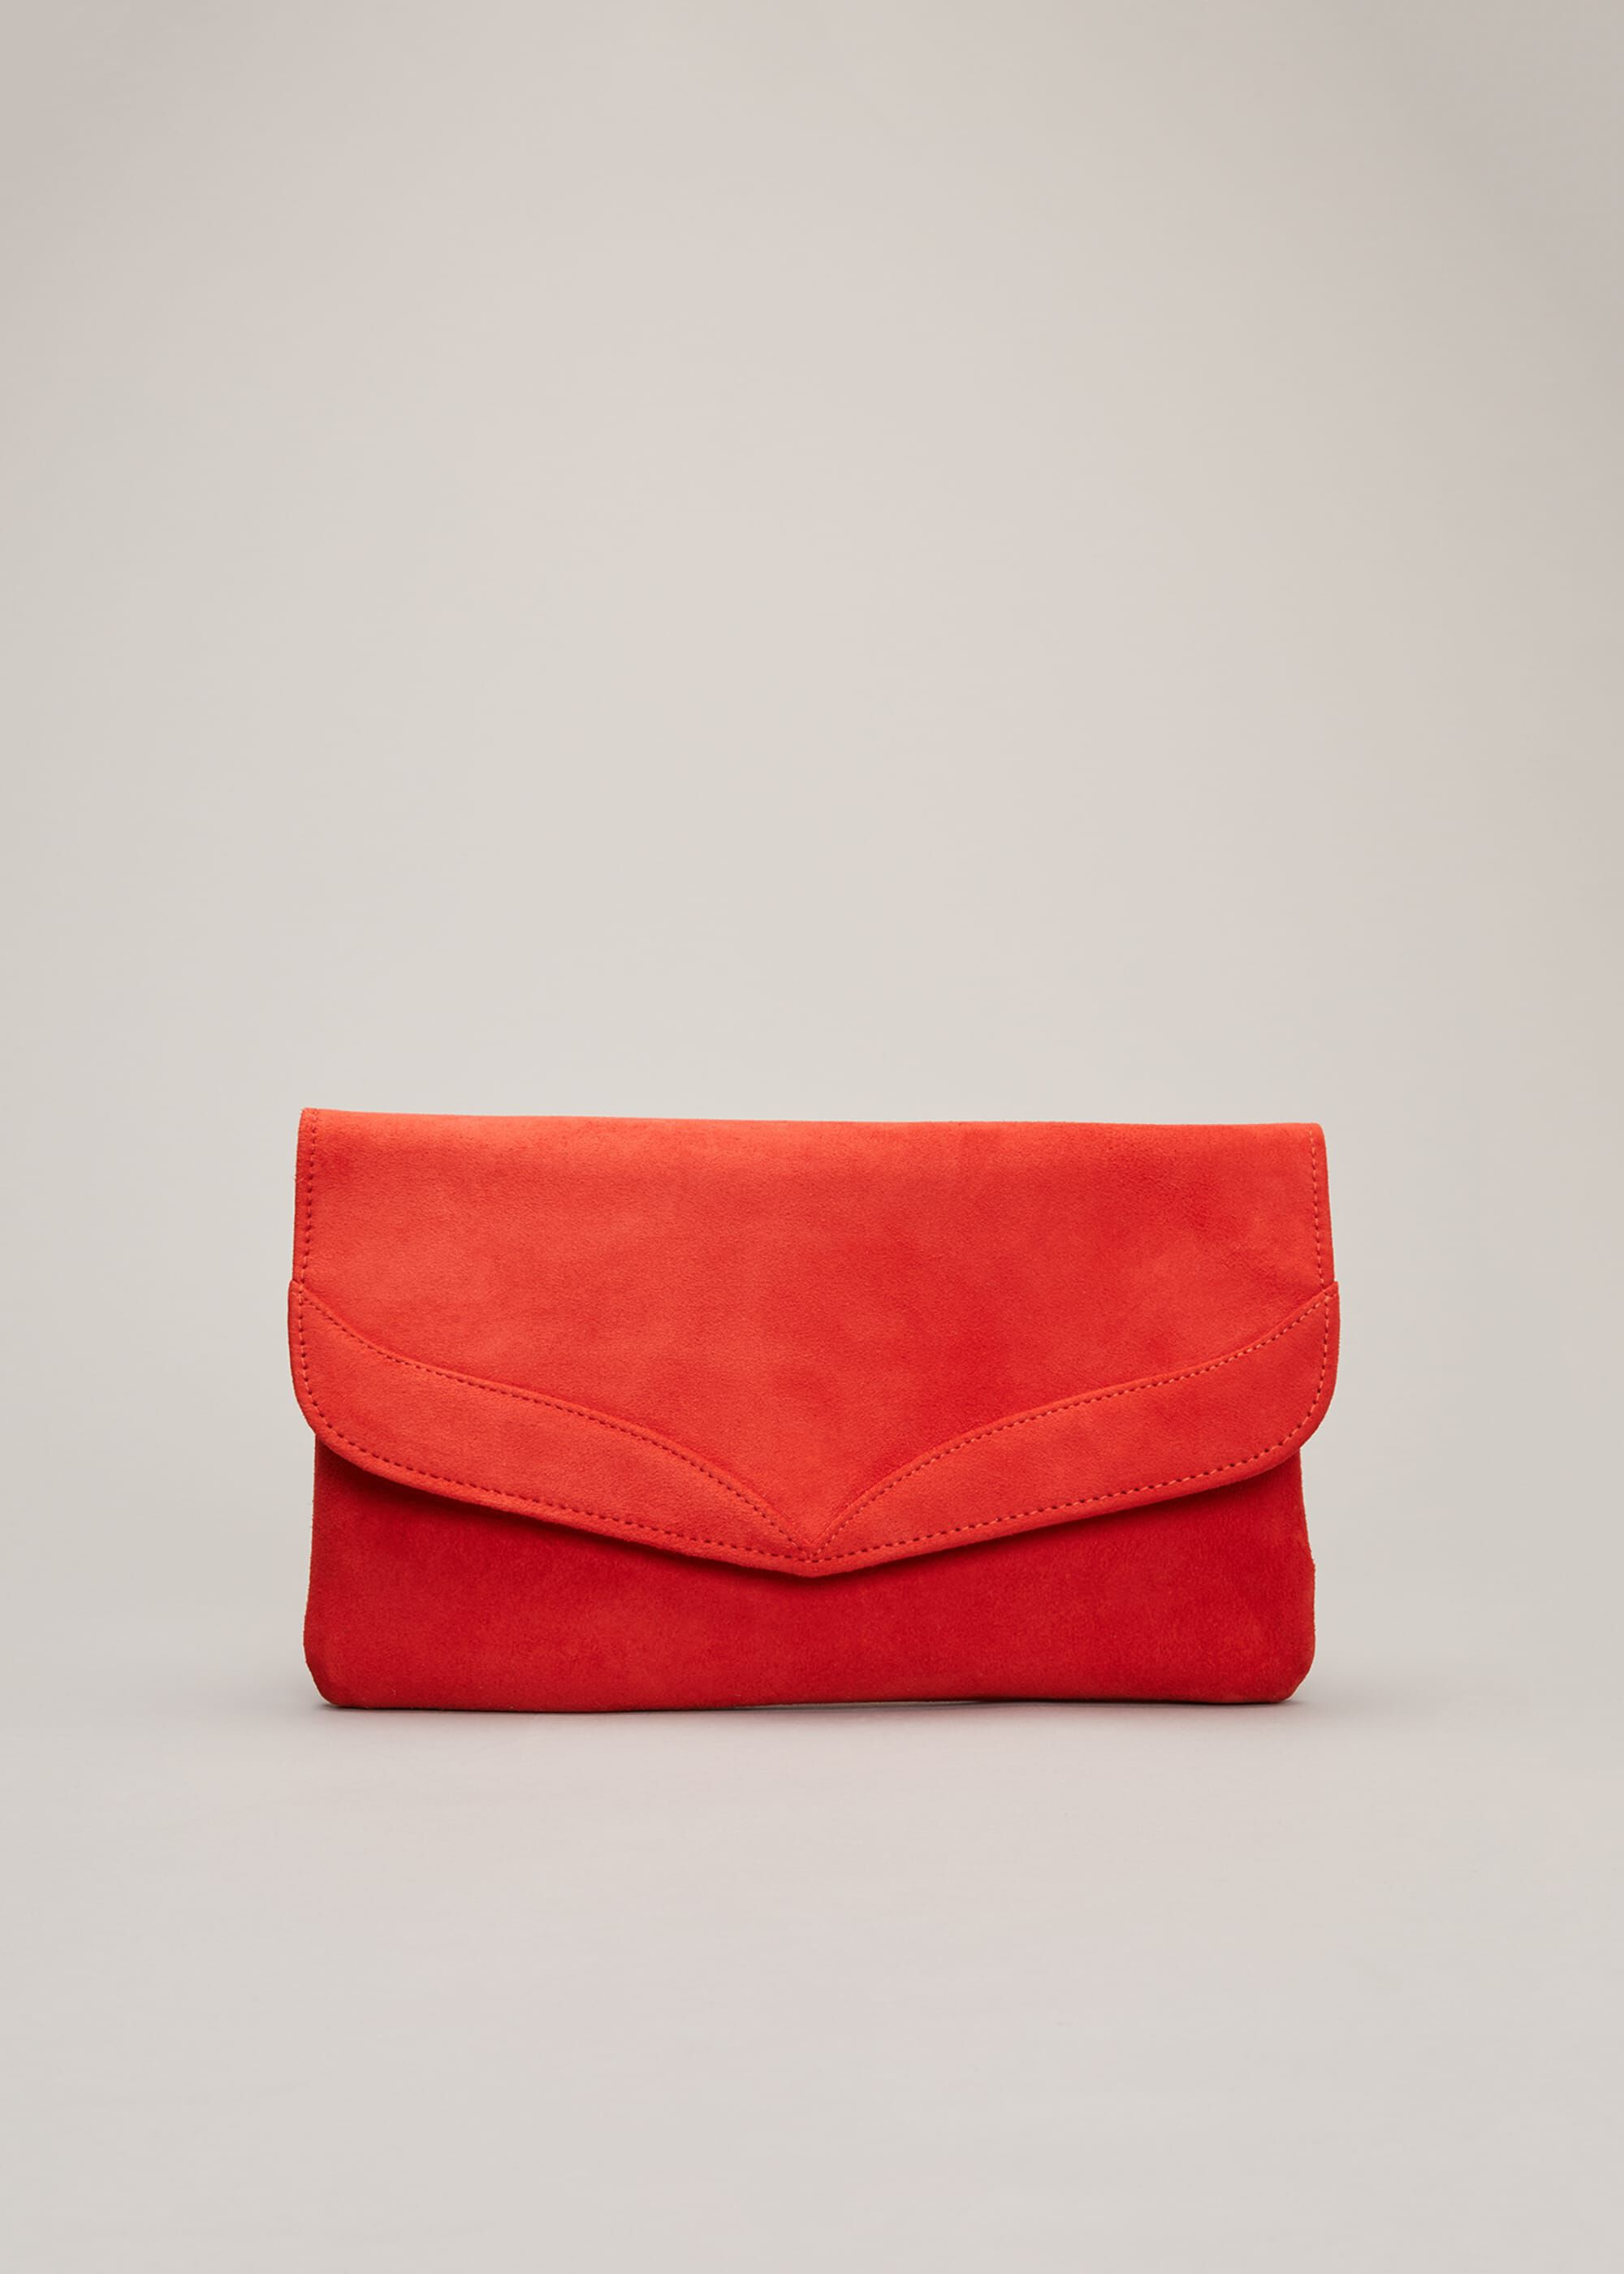 Phase Eight Caitlin Suede Clutch Bag, Red, Bag